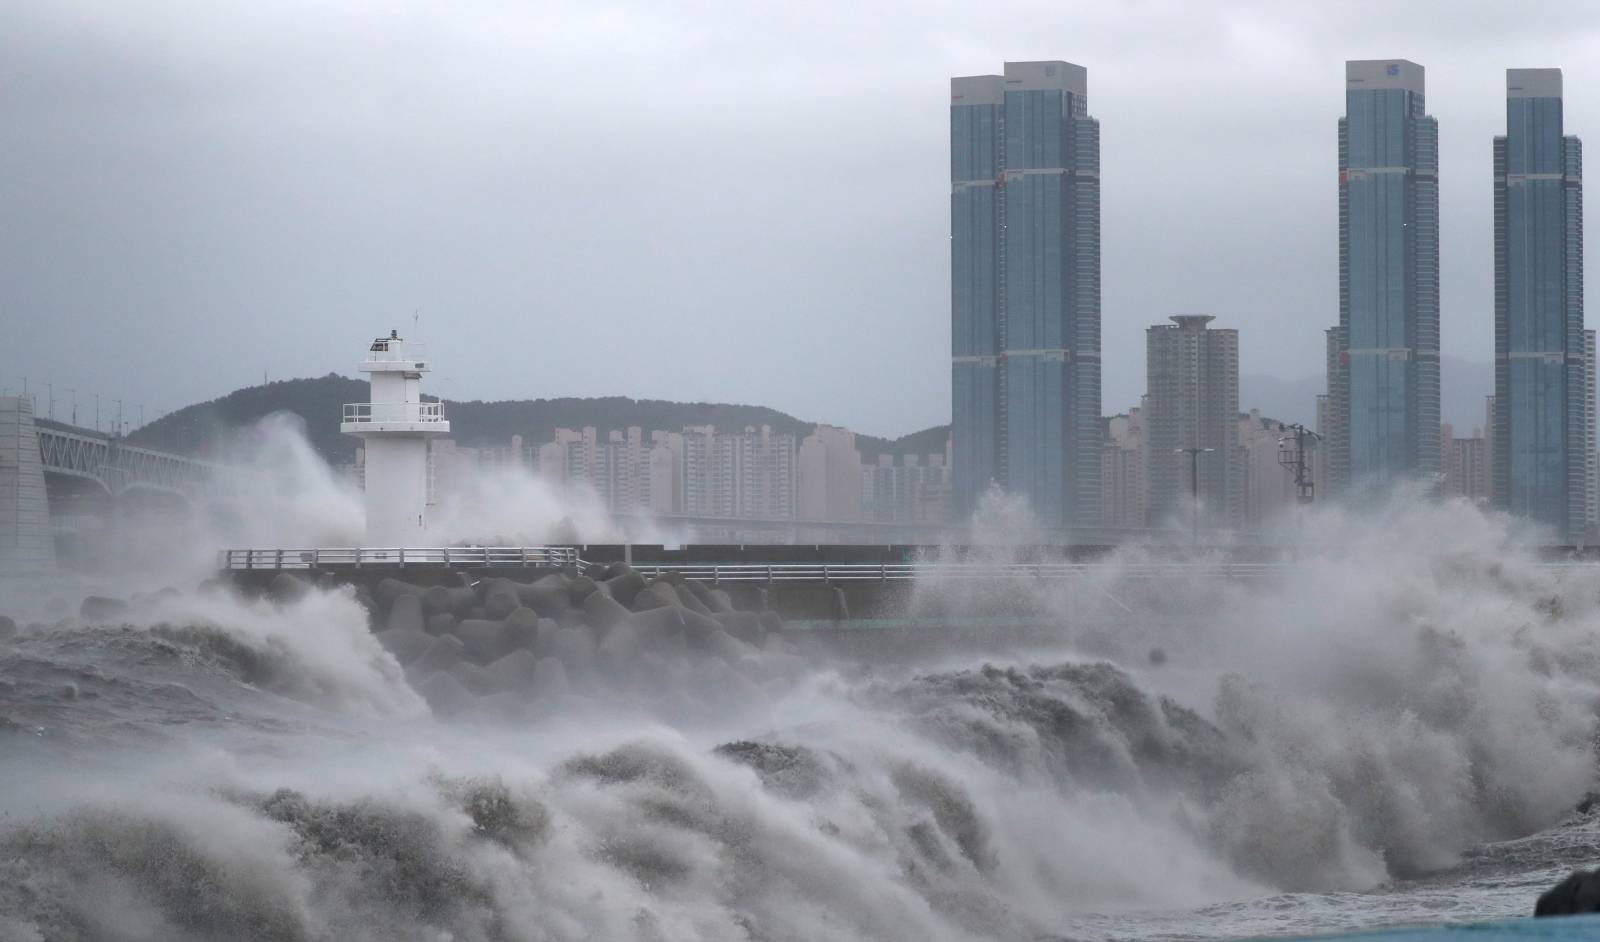 High waves caused by Typhoon Haishen crash at seawall in Busan